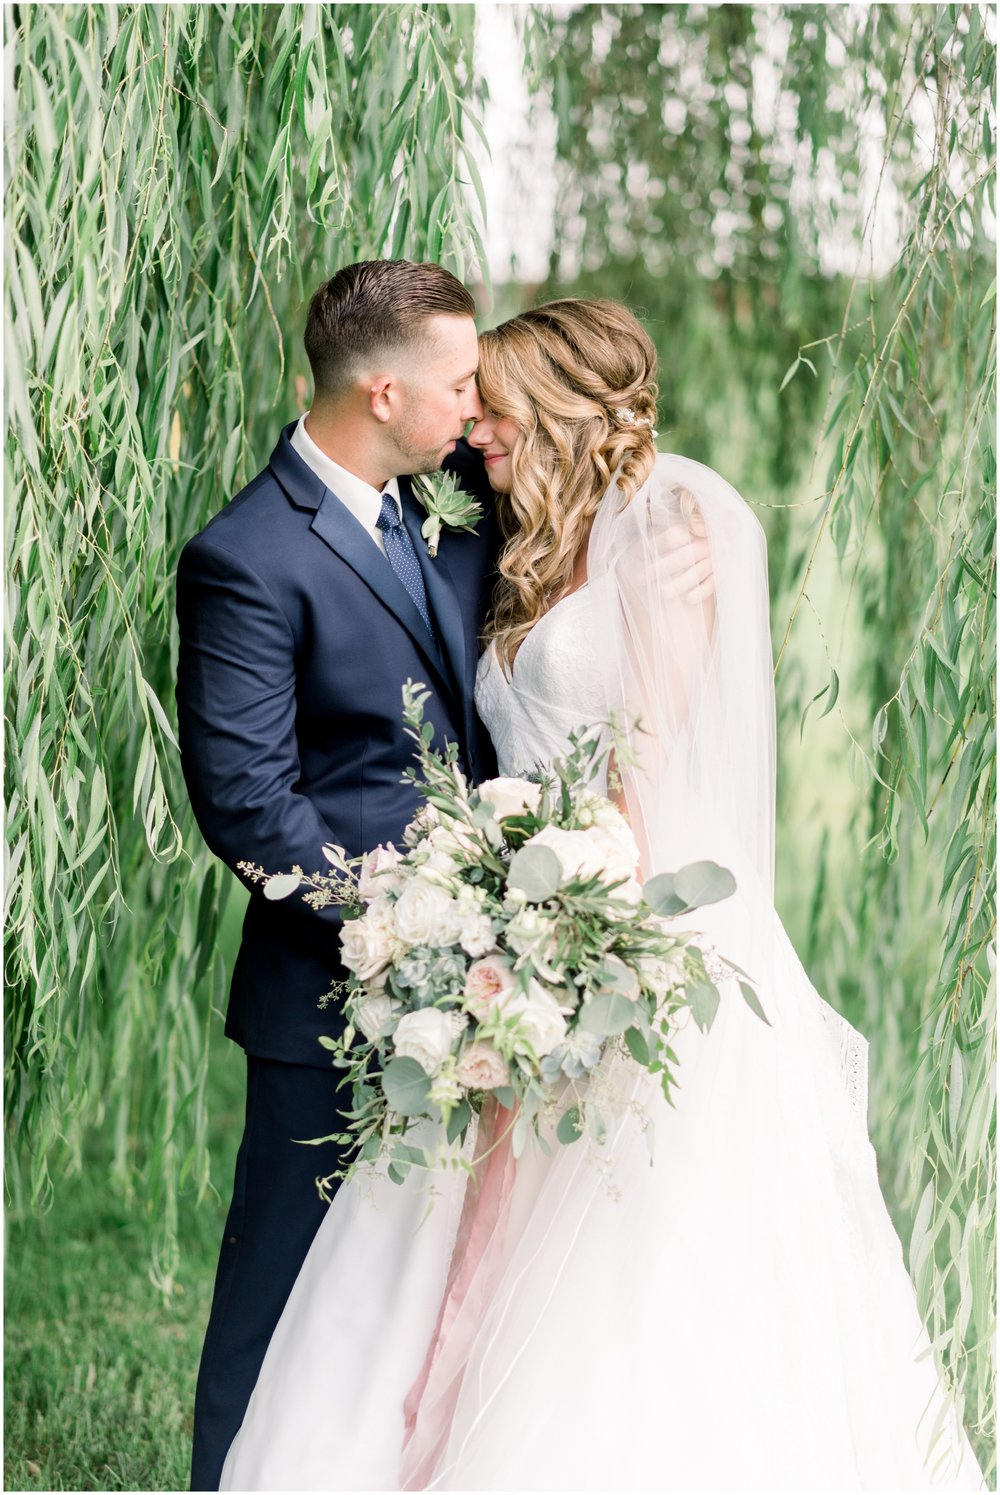 Krista Brackin Photography | July Wedding at The Farm at Eagle's Ridge_0016.jpg